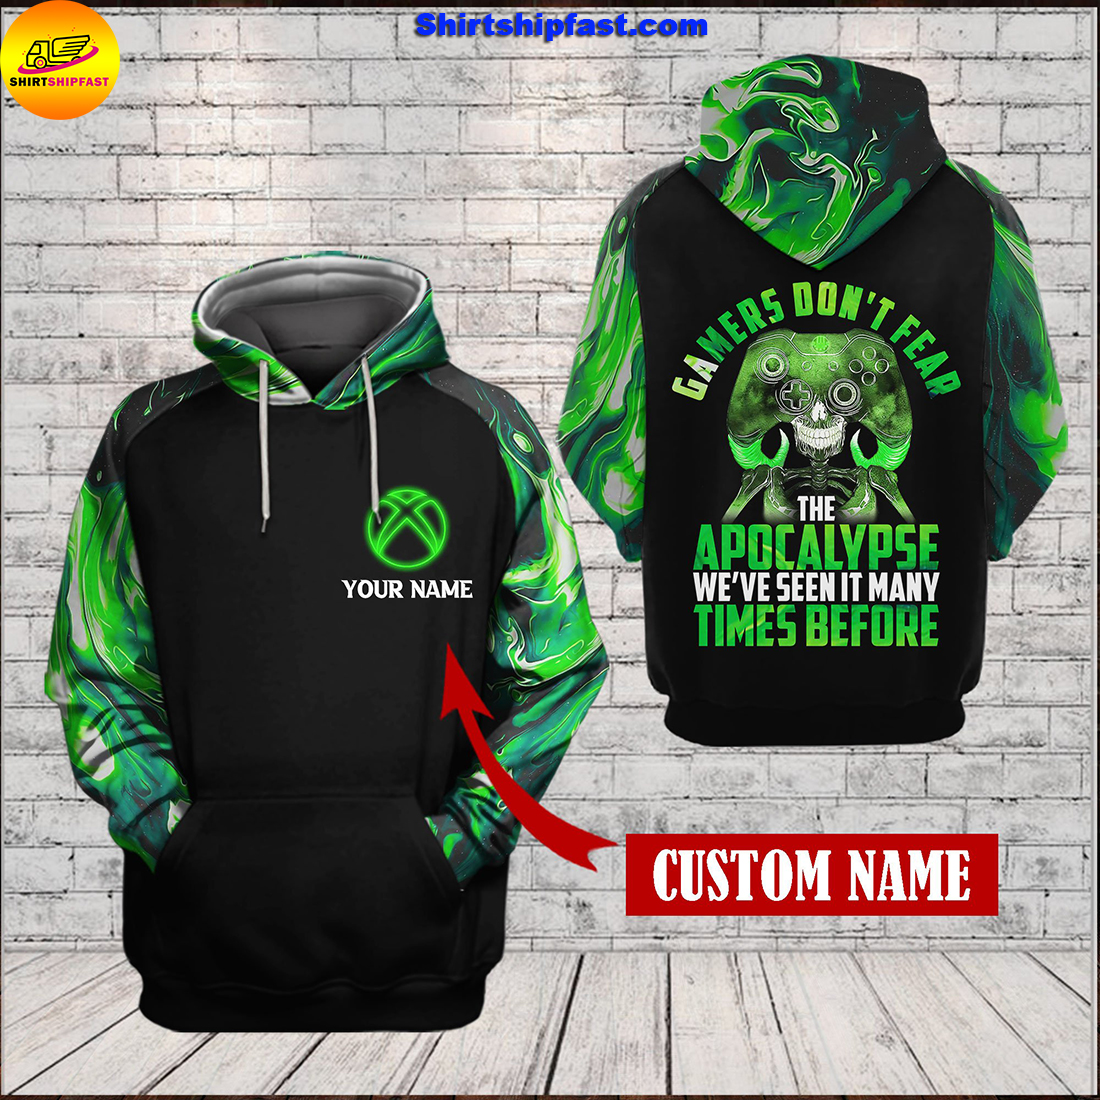 Xbox Gamers don't fear the apocalypse 3d hoodie and zip hoodie